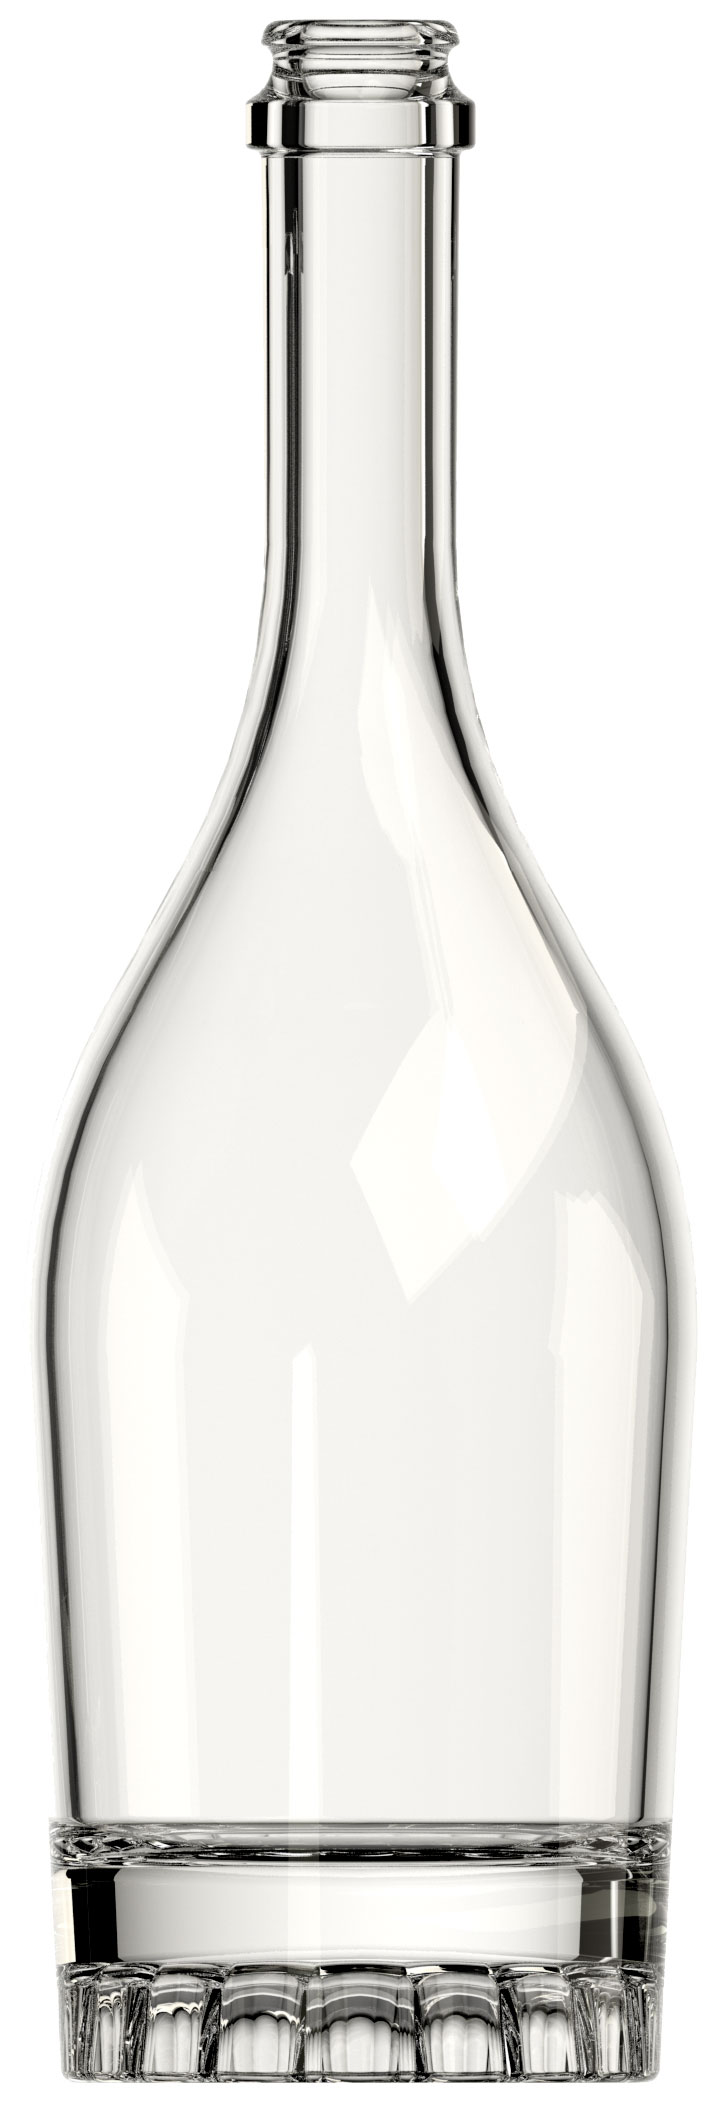 Premium Glass Bottle DA Opera Roseta